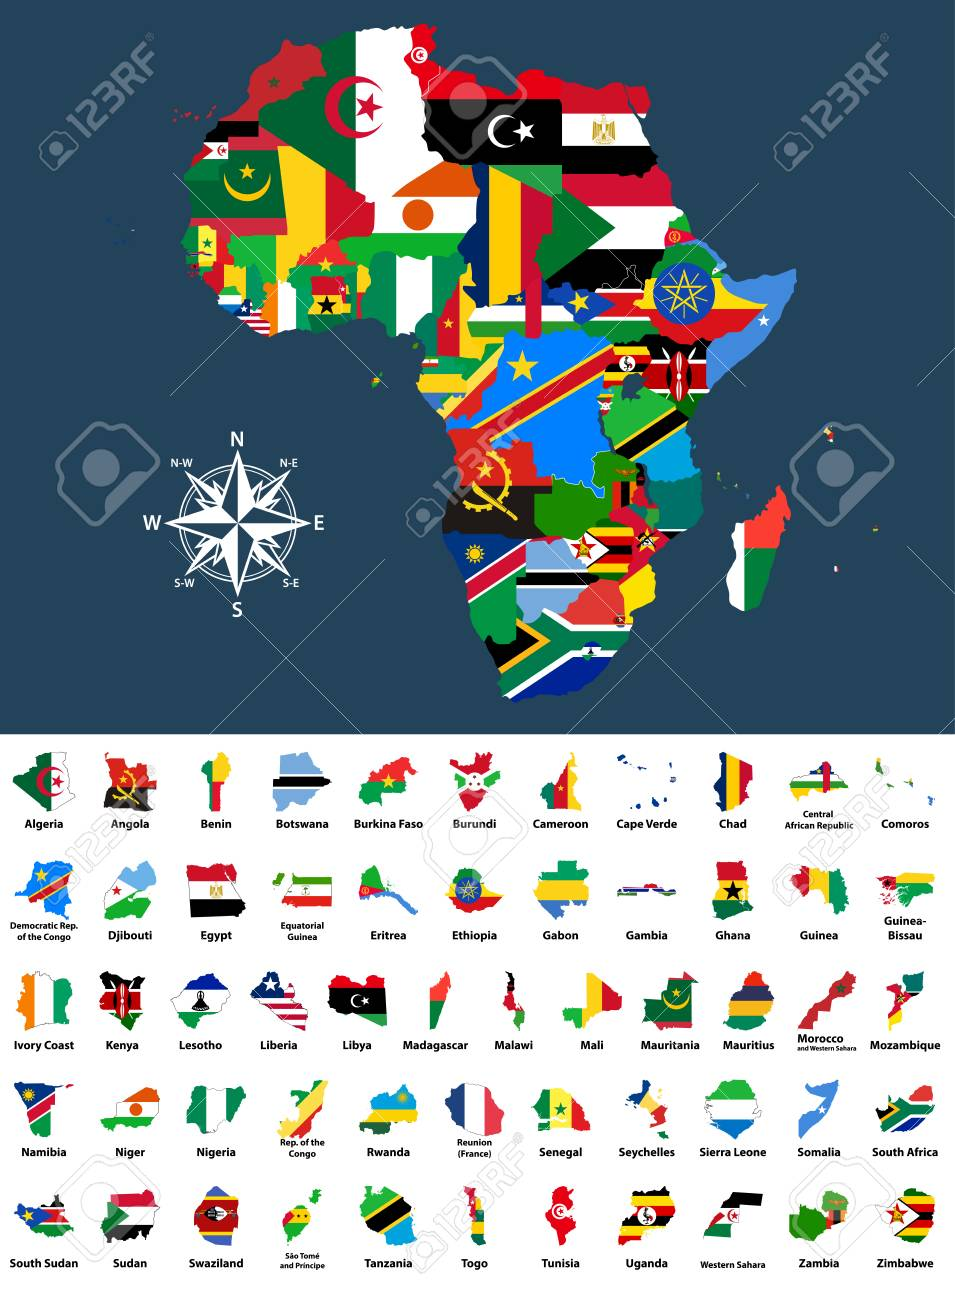 Map Of Africa Flags.Map Of Africa Mixed With Countries Flags Collection Of All African